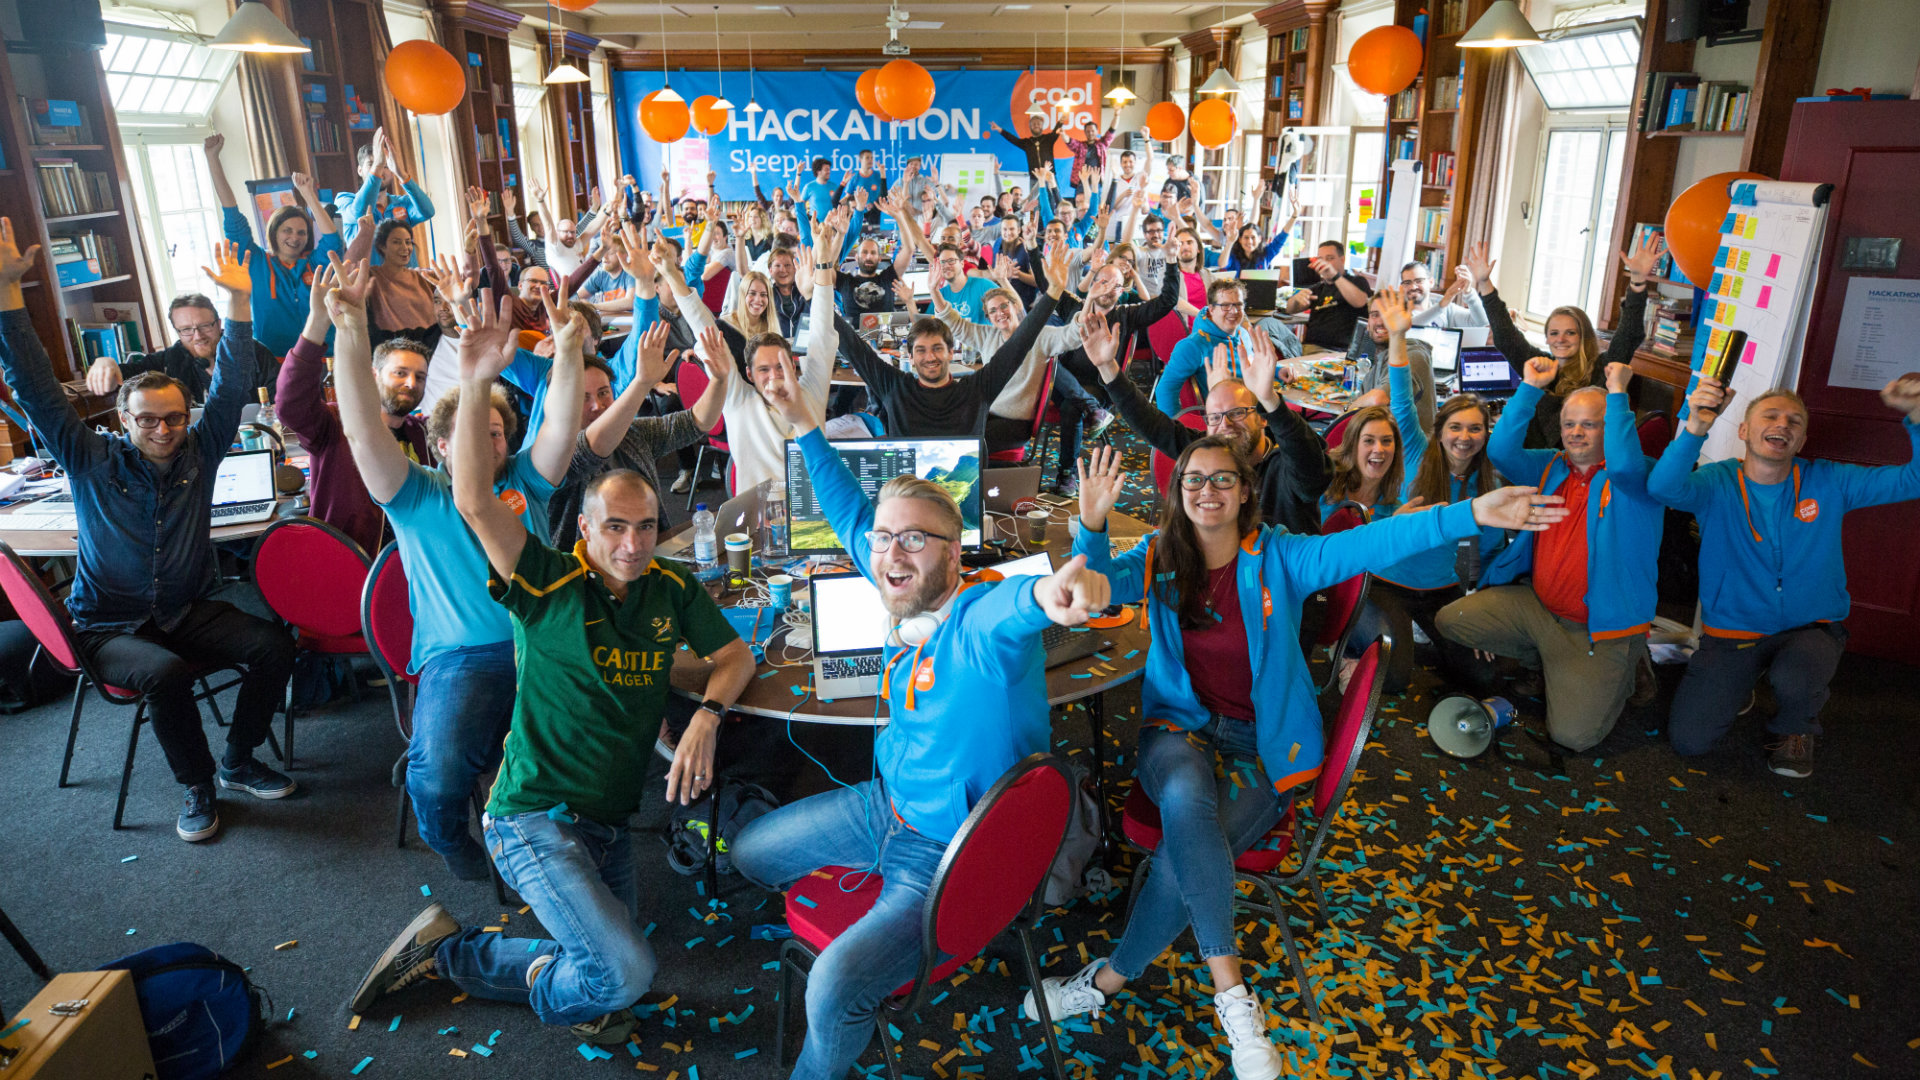 De Coolblue Hackathon 2017